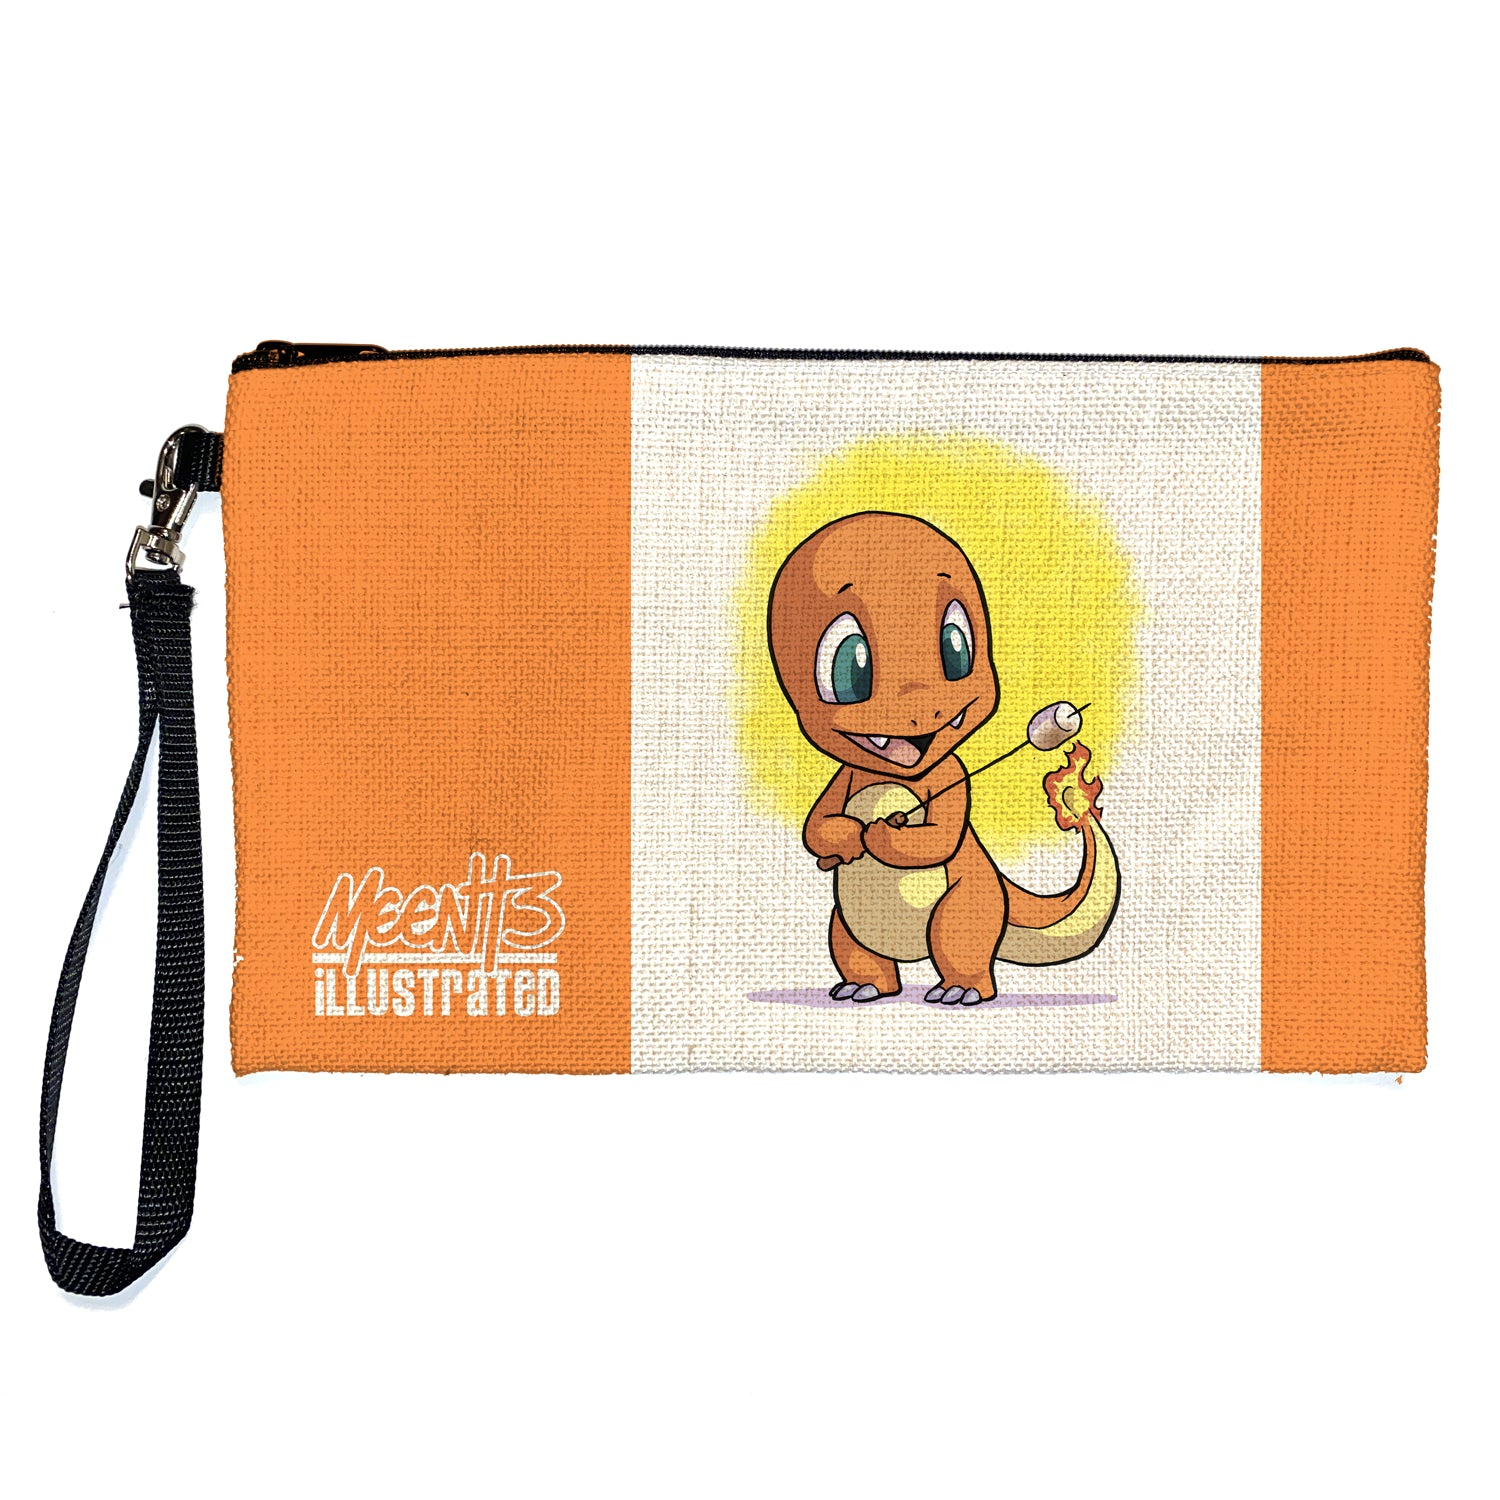 Charmander - Character - Large Pencil/Device Bag